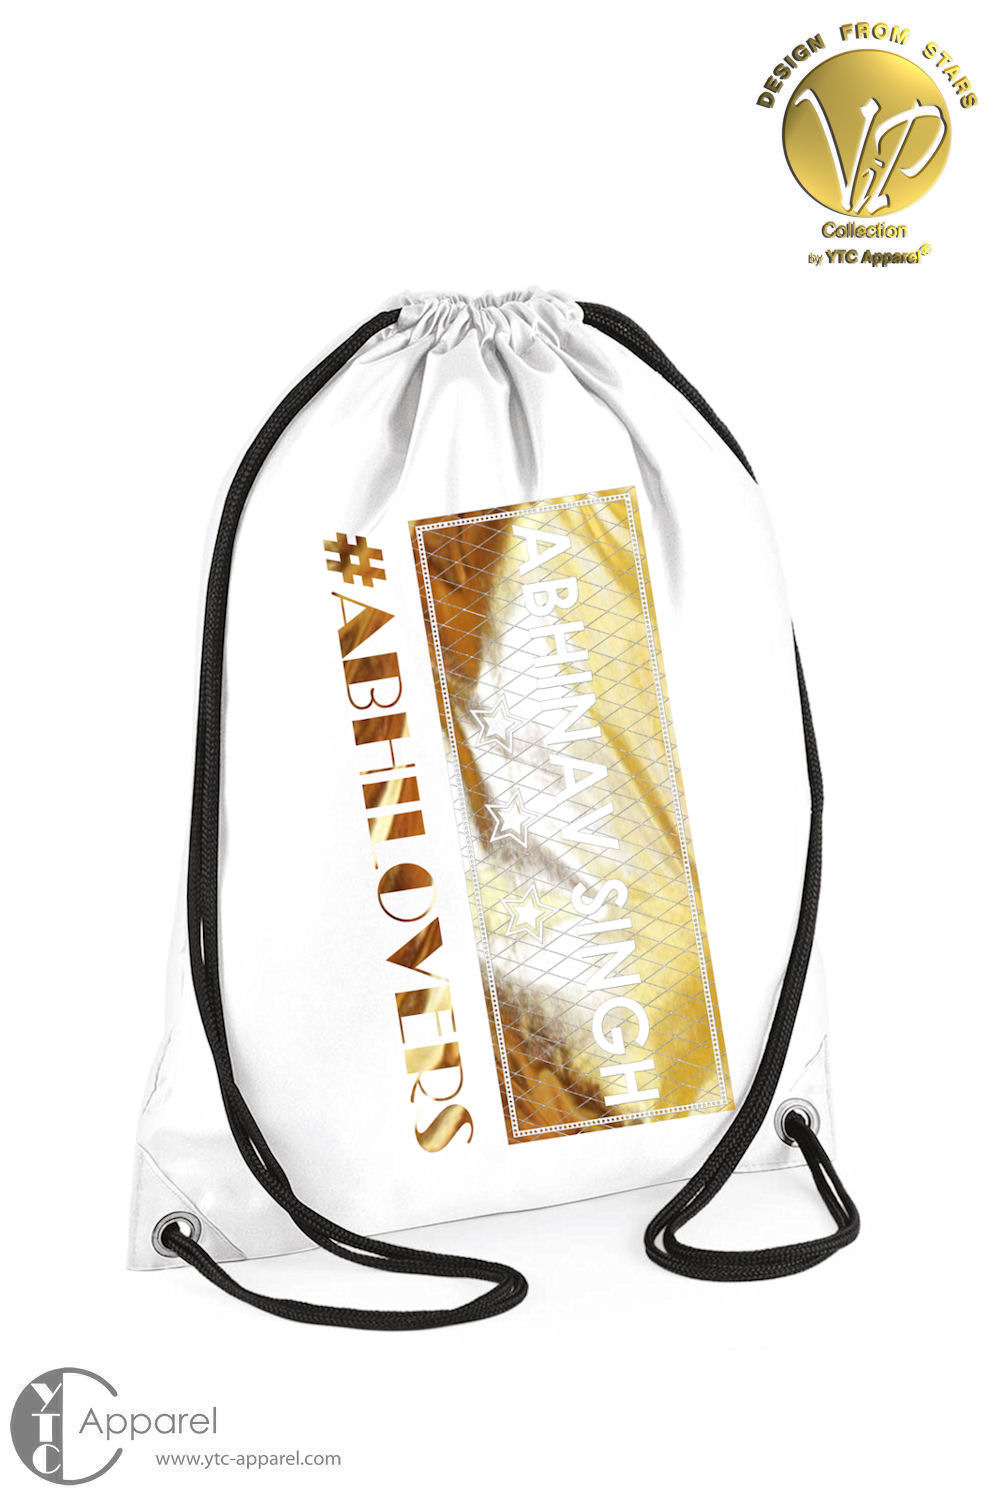 Abhinav Singh Gym Bag White (11 Liter)